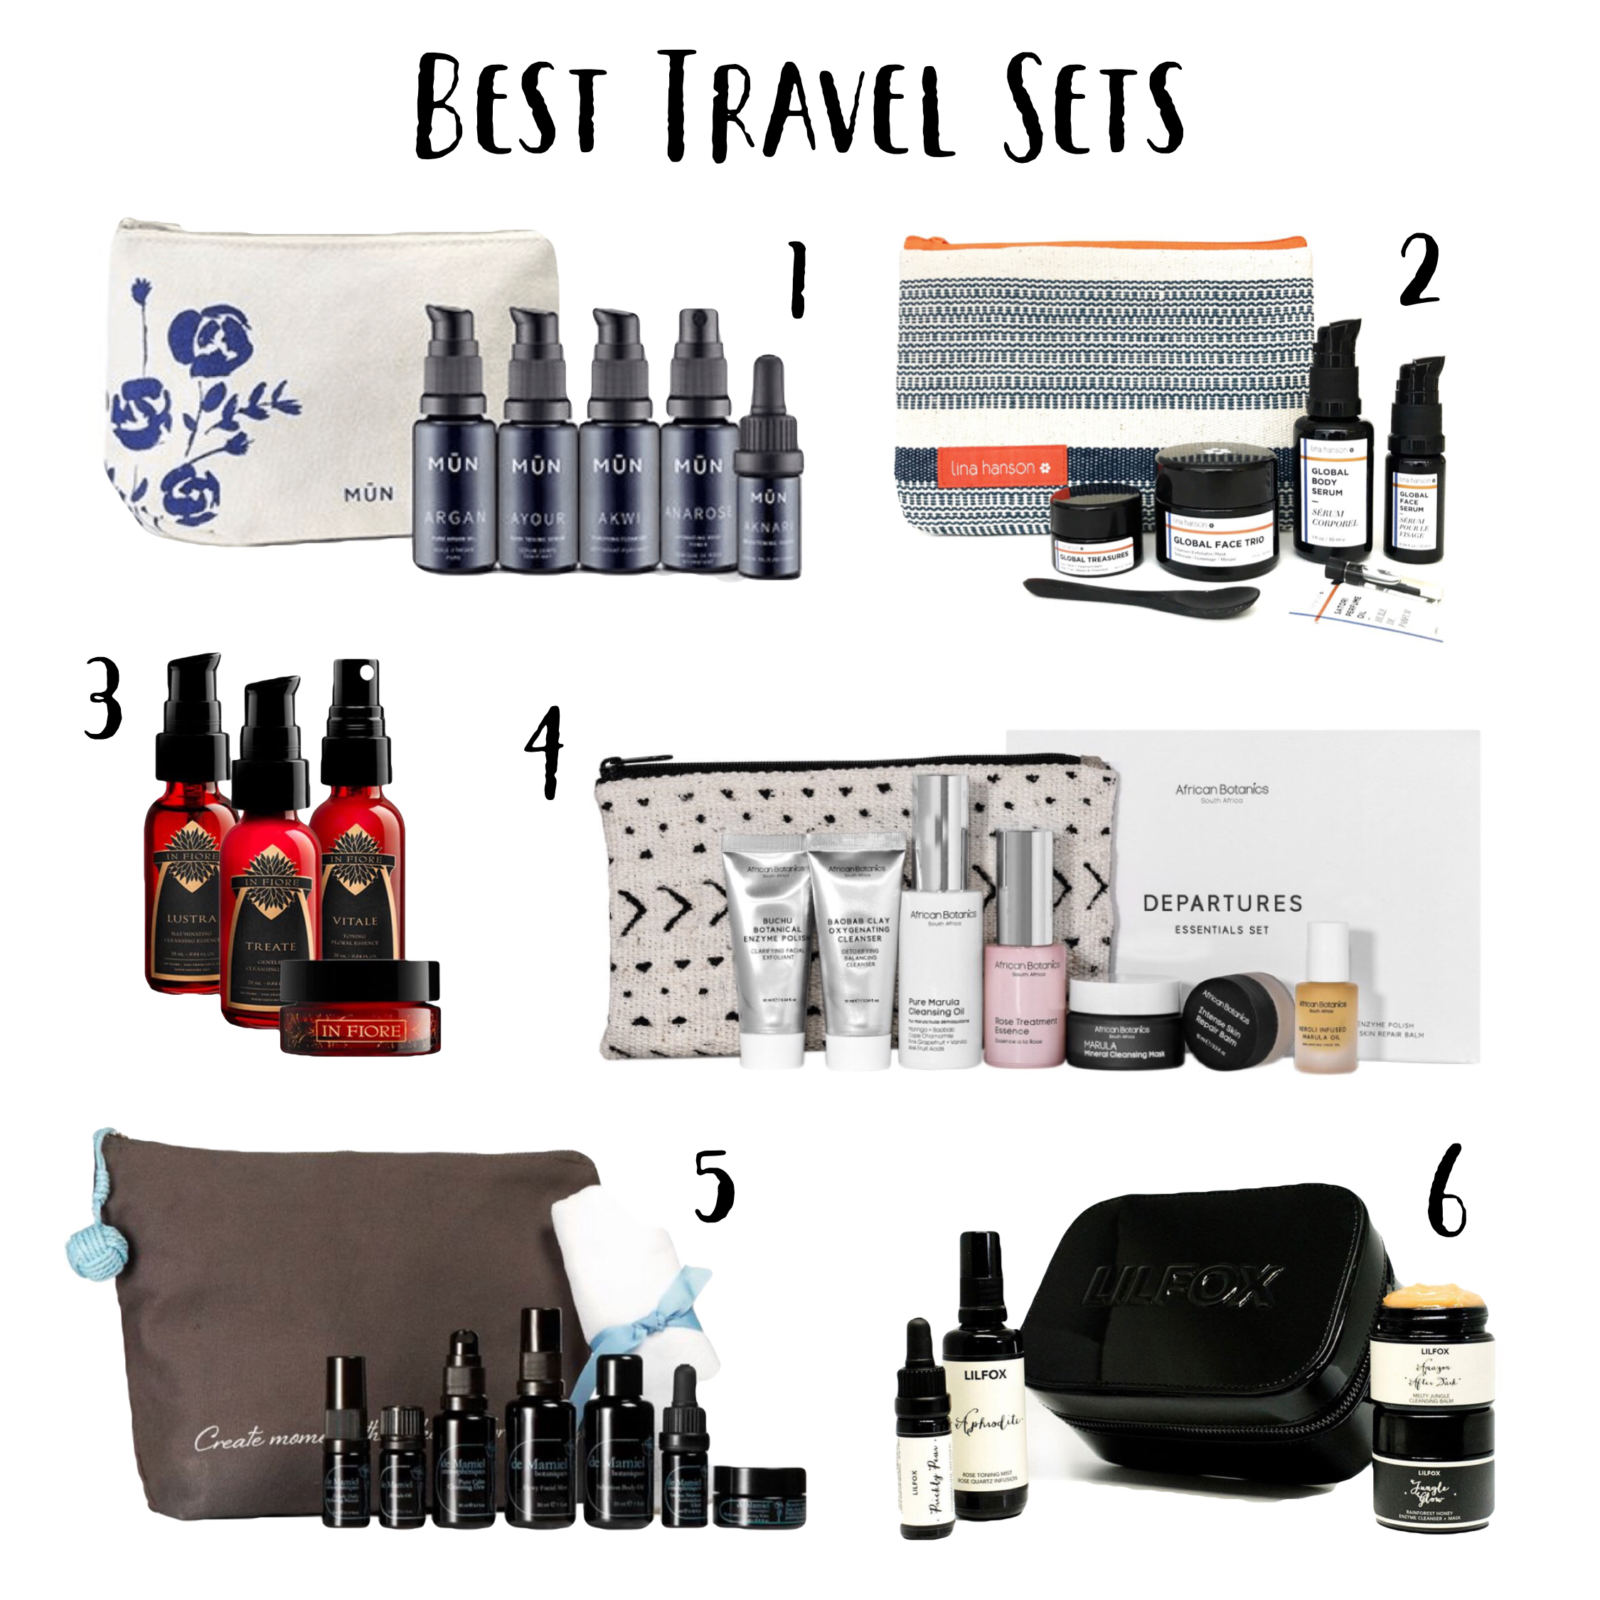 Product Roundup: The Best Travel Sets